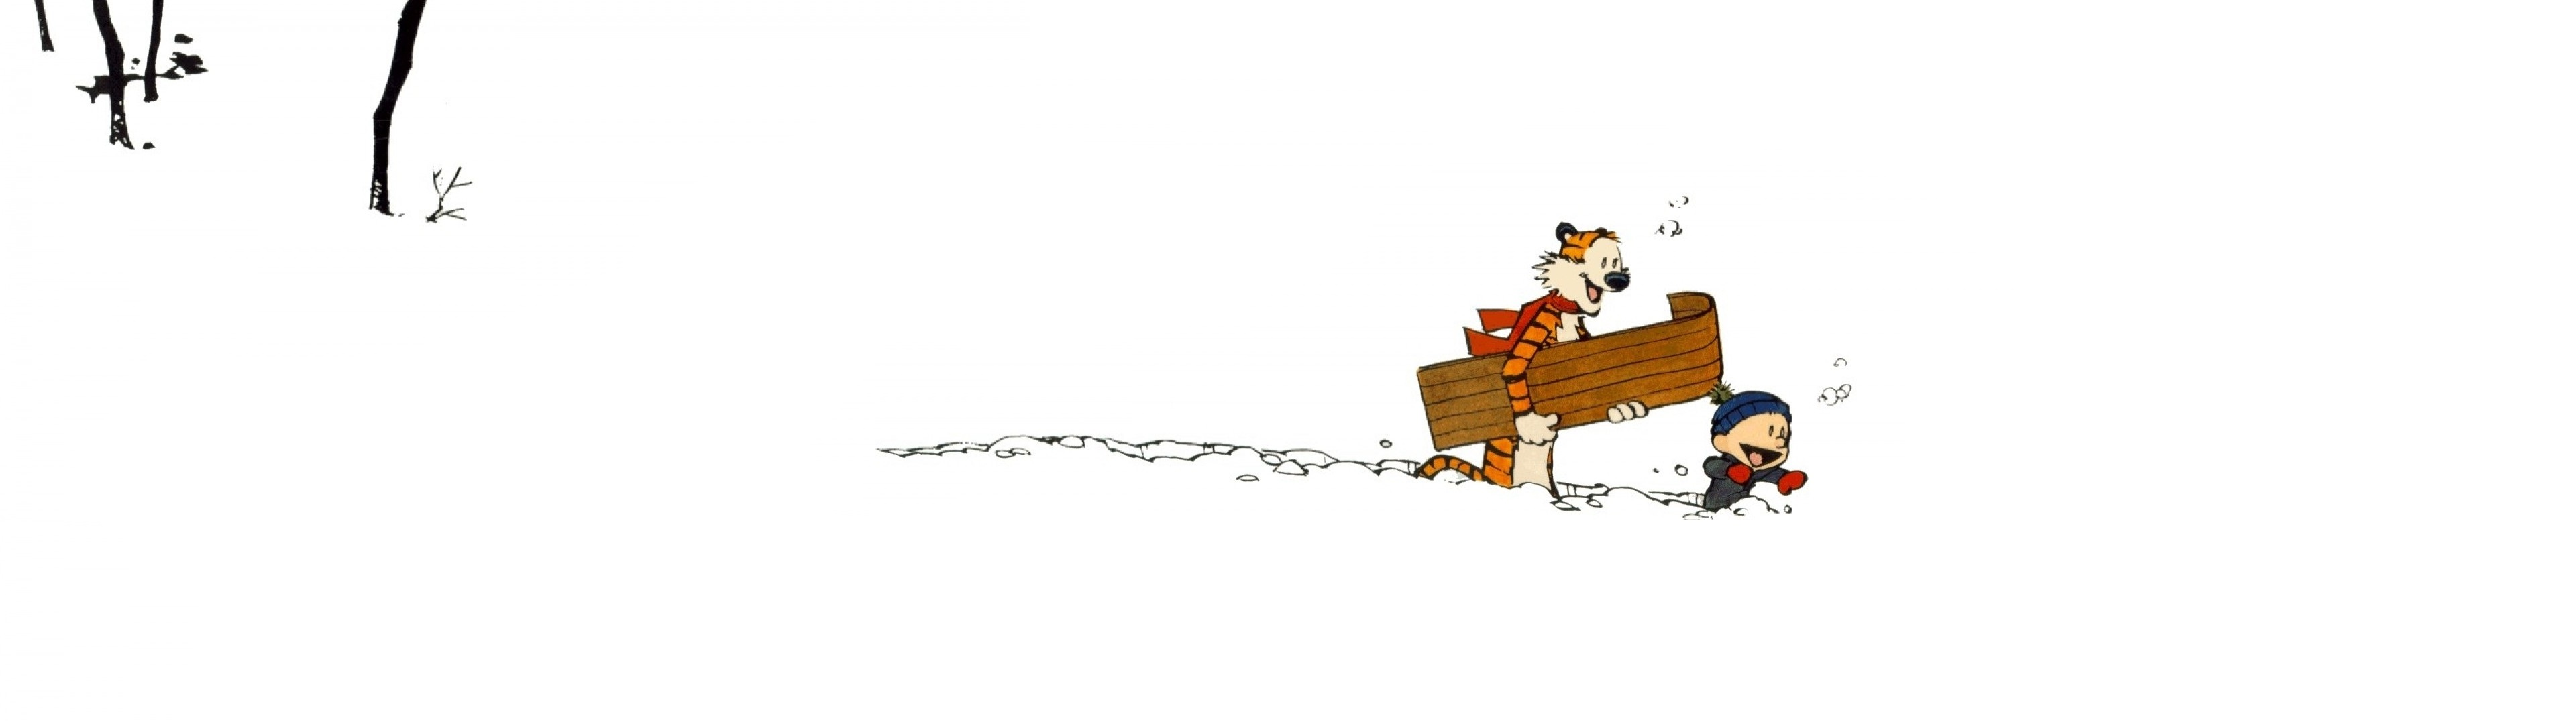 I couldnt find any good dual monitor Calvin and Hobbes Wallpapers 3840x1080